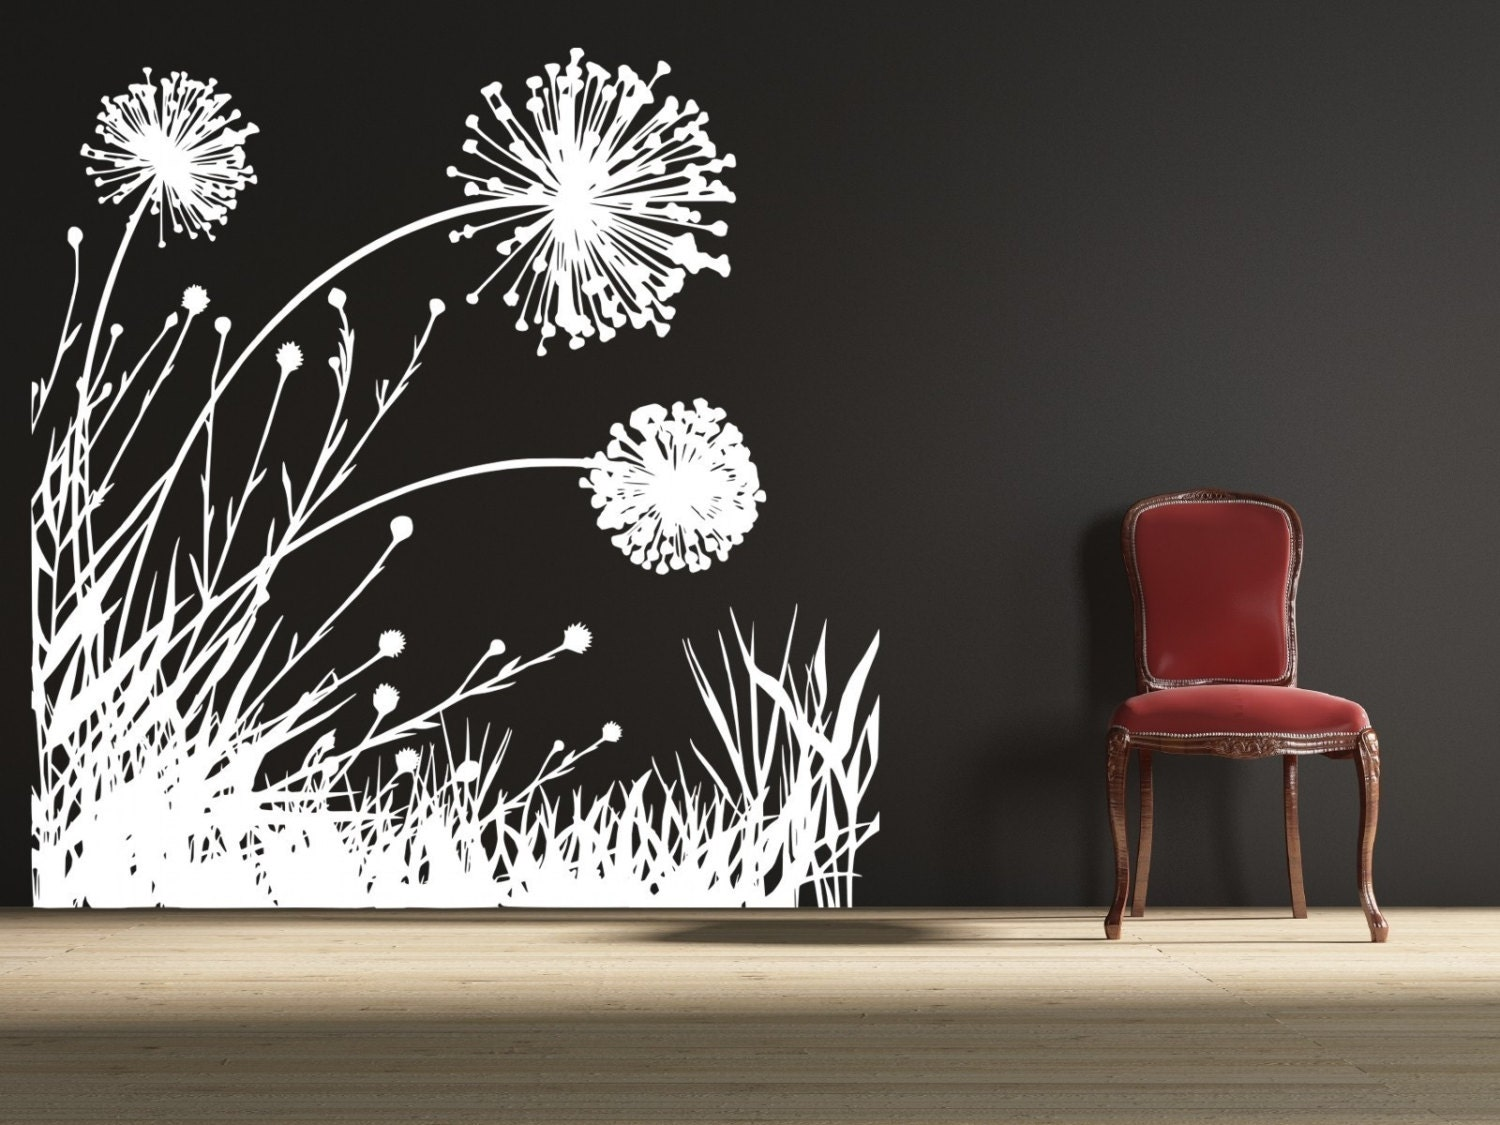 Modern Wall Decor Decals : Dandelion field uber decals wall decal vinyl decor art